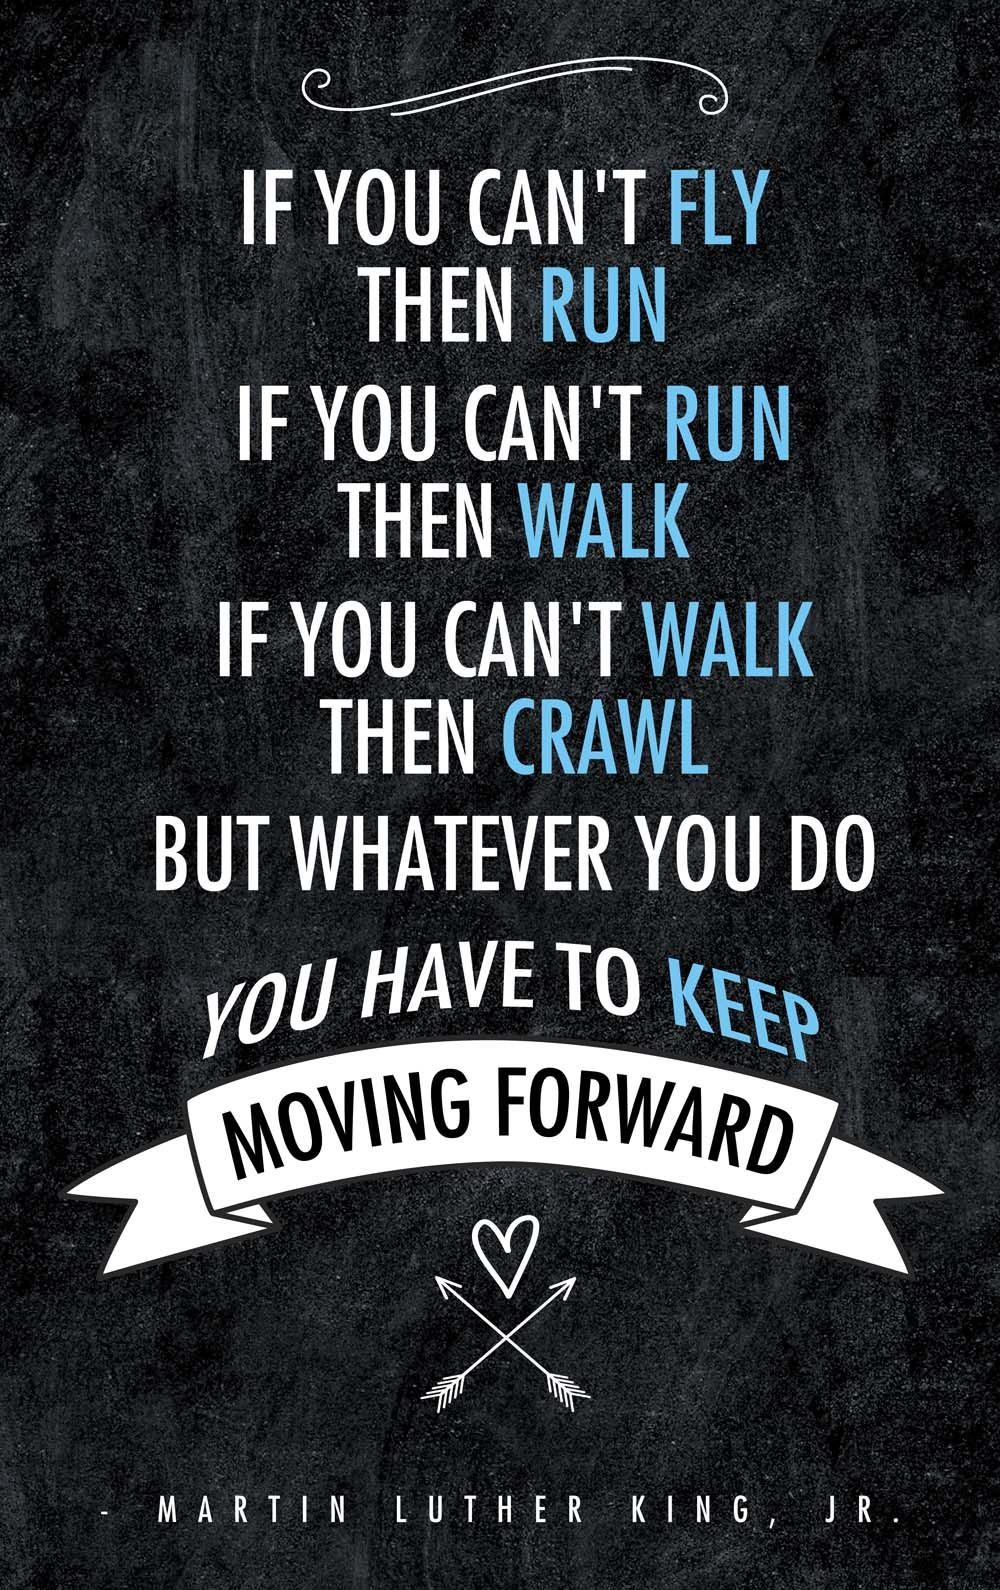 Quotes About Moving Forward Simple Keep Moving Forward #quote #martinlutherking  Inspiration Quotes